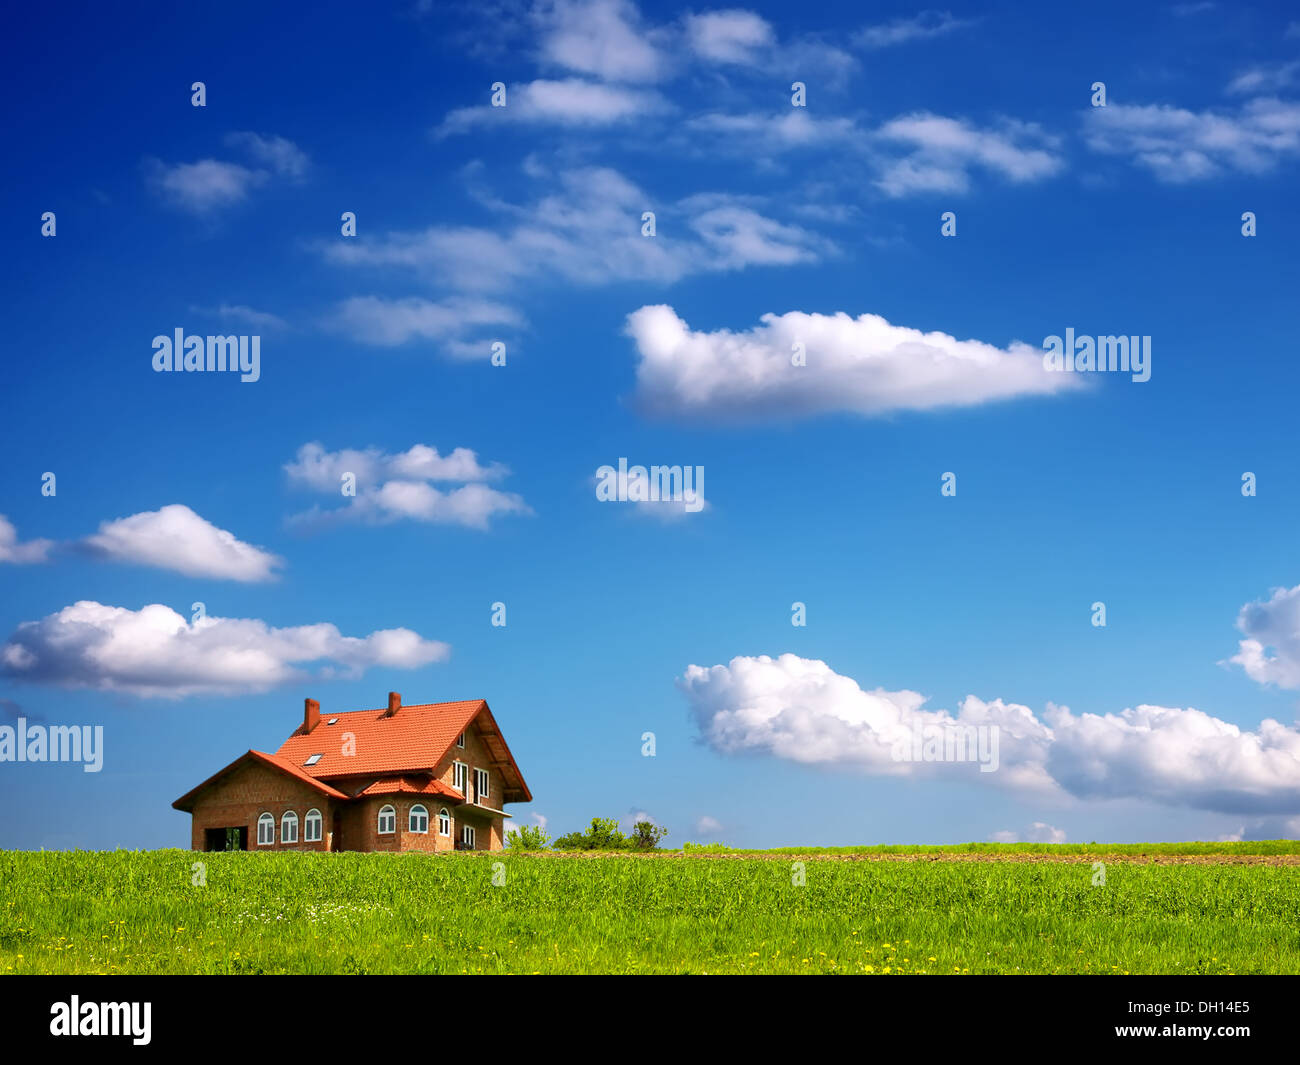 Warm your house - Stock Image